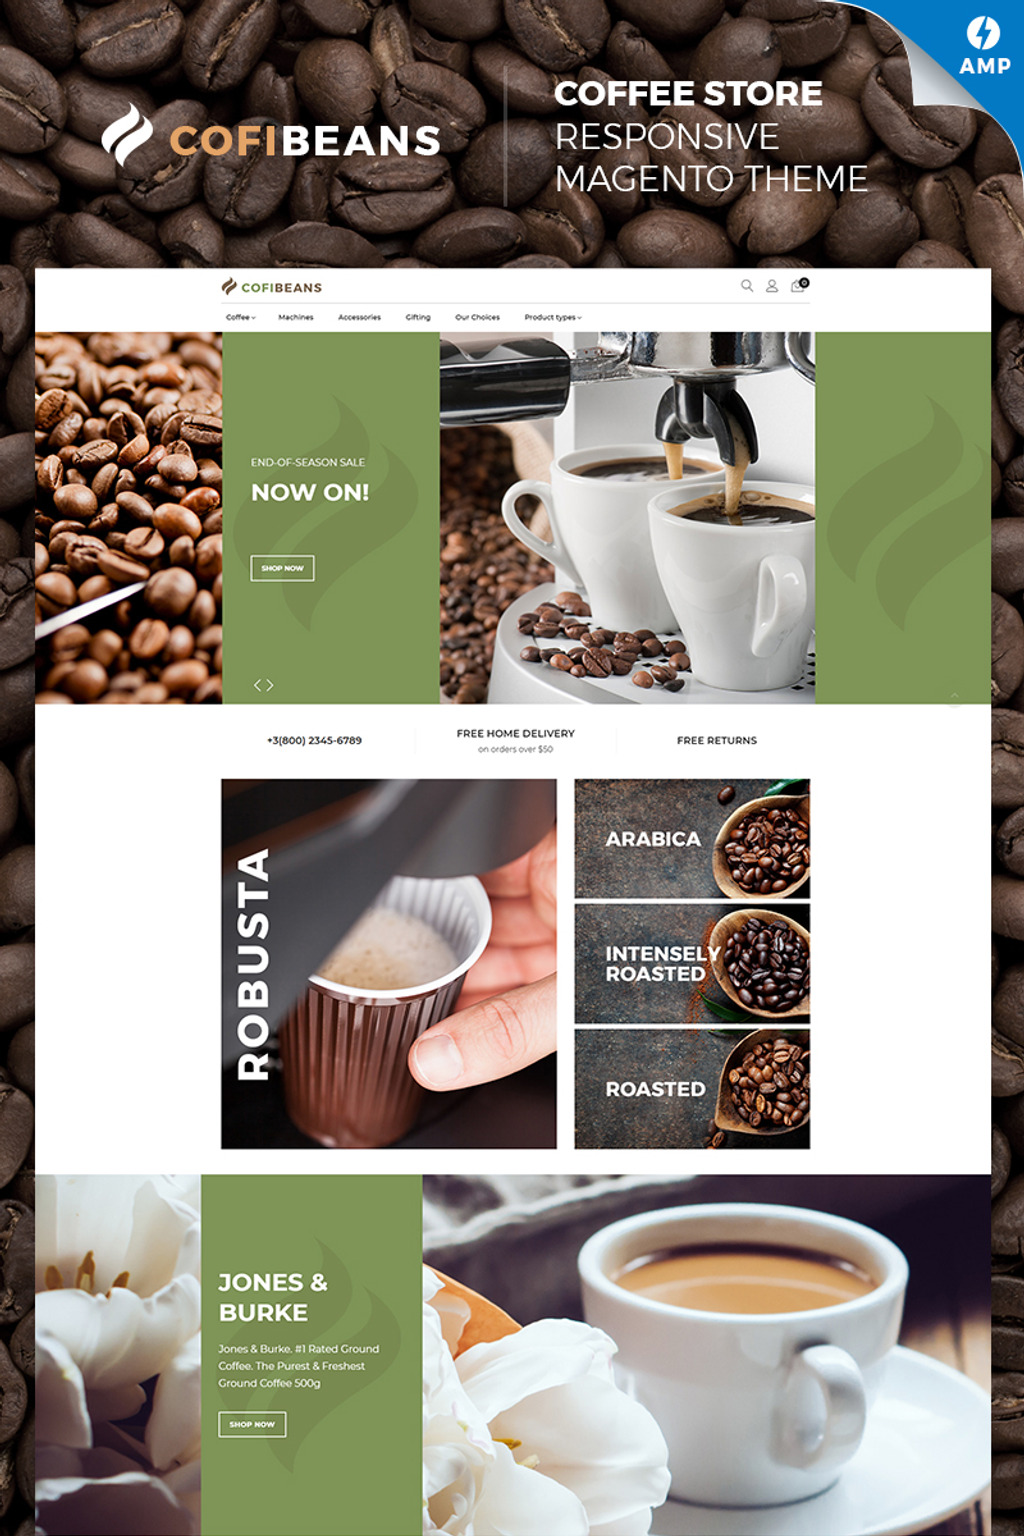 CofiBeans - AMP Coffee Shop Magento Theme Big Screenshot